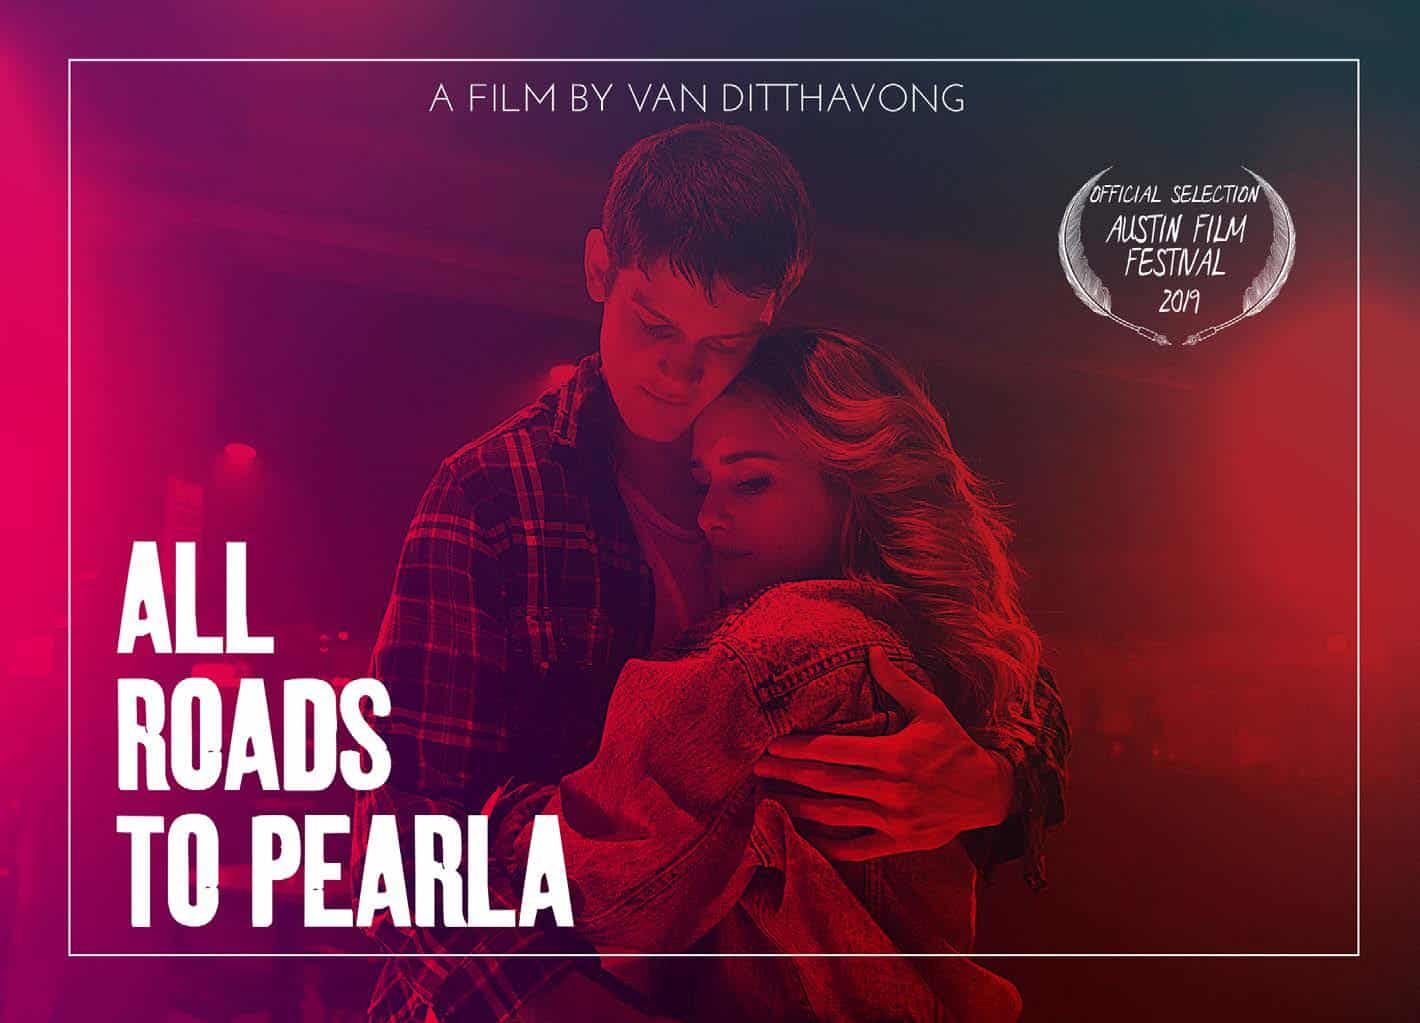 Movie Poster - All Roads To Pearla